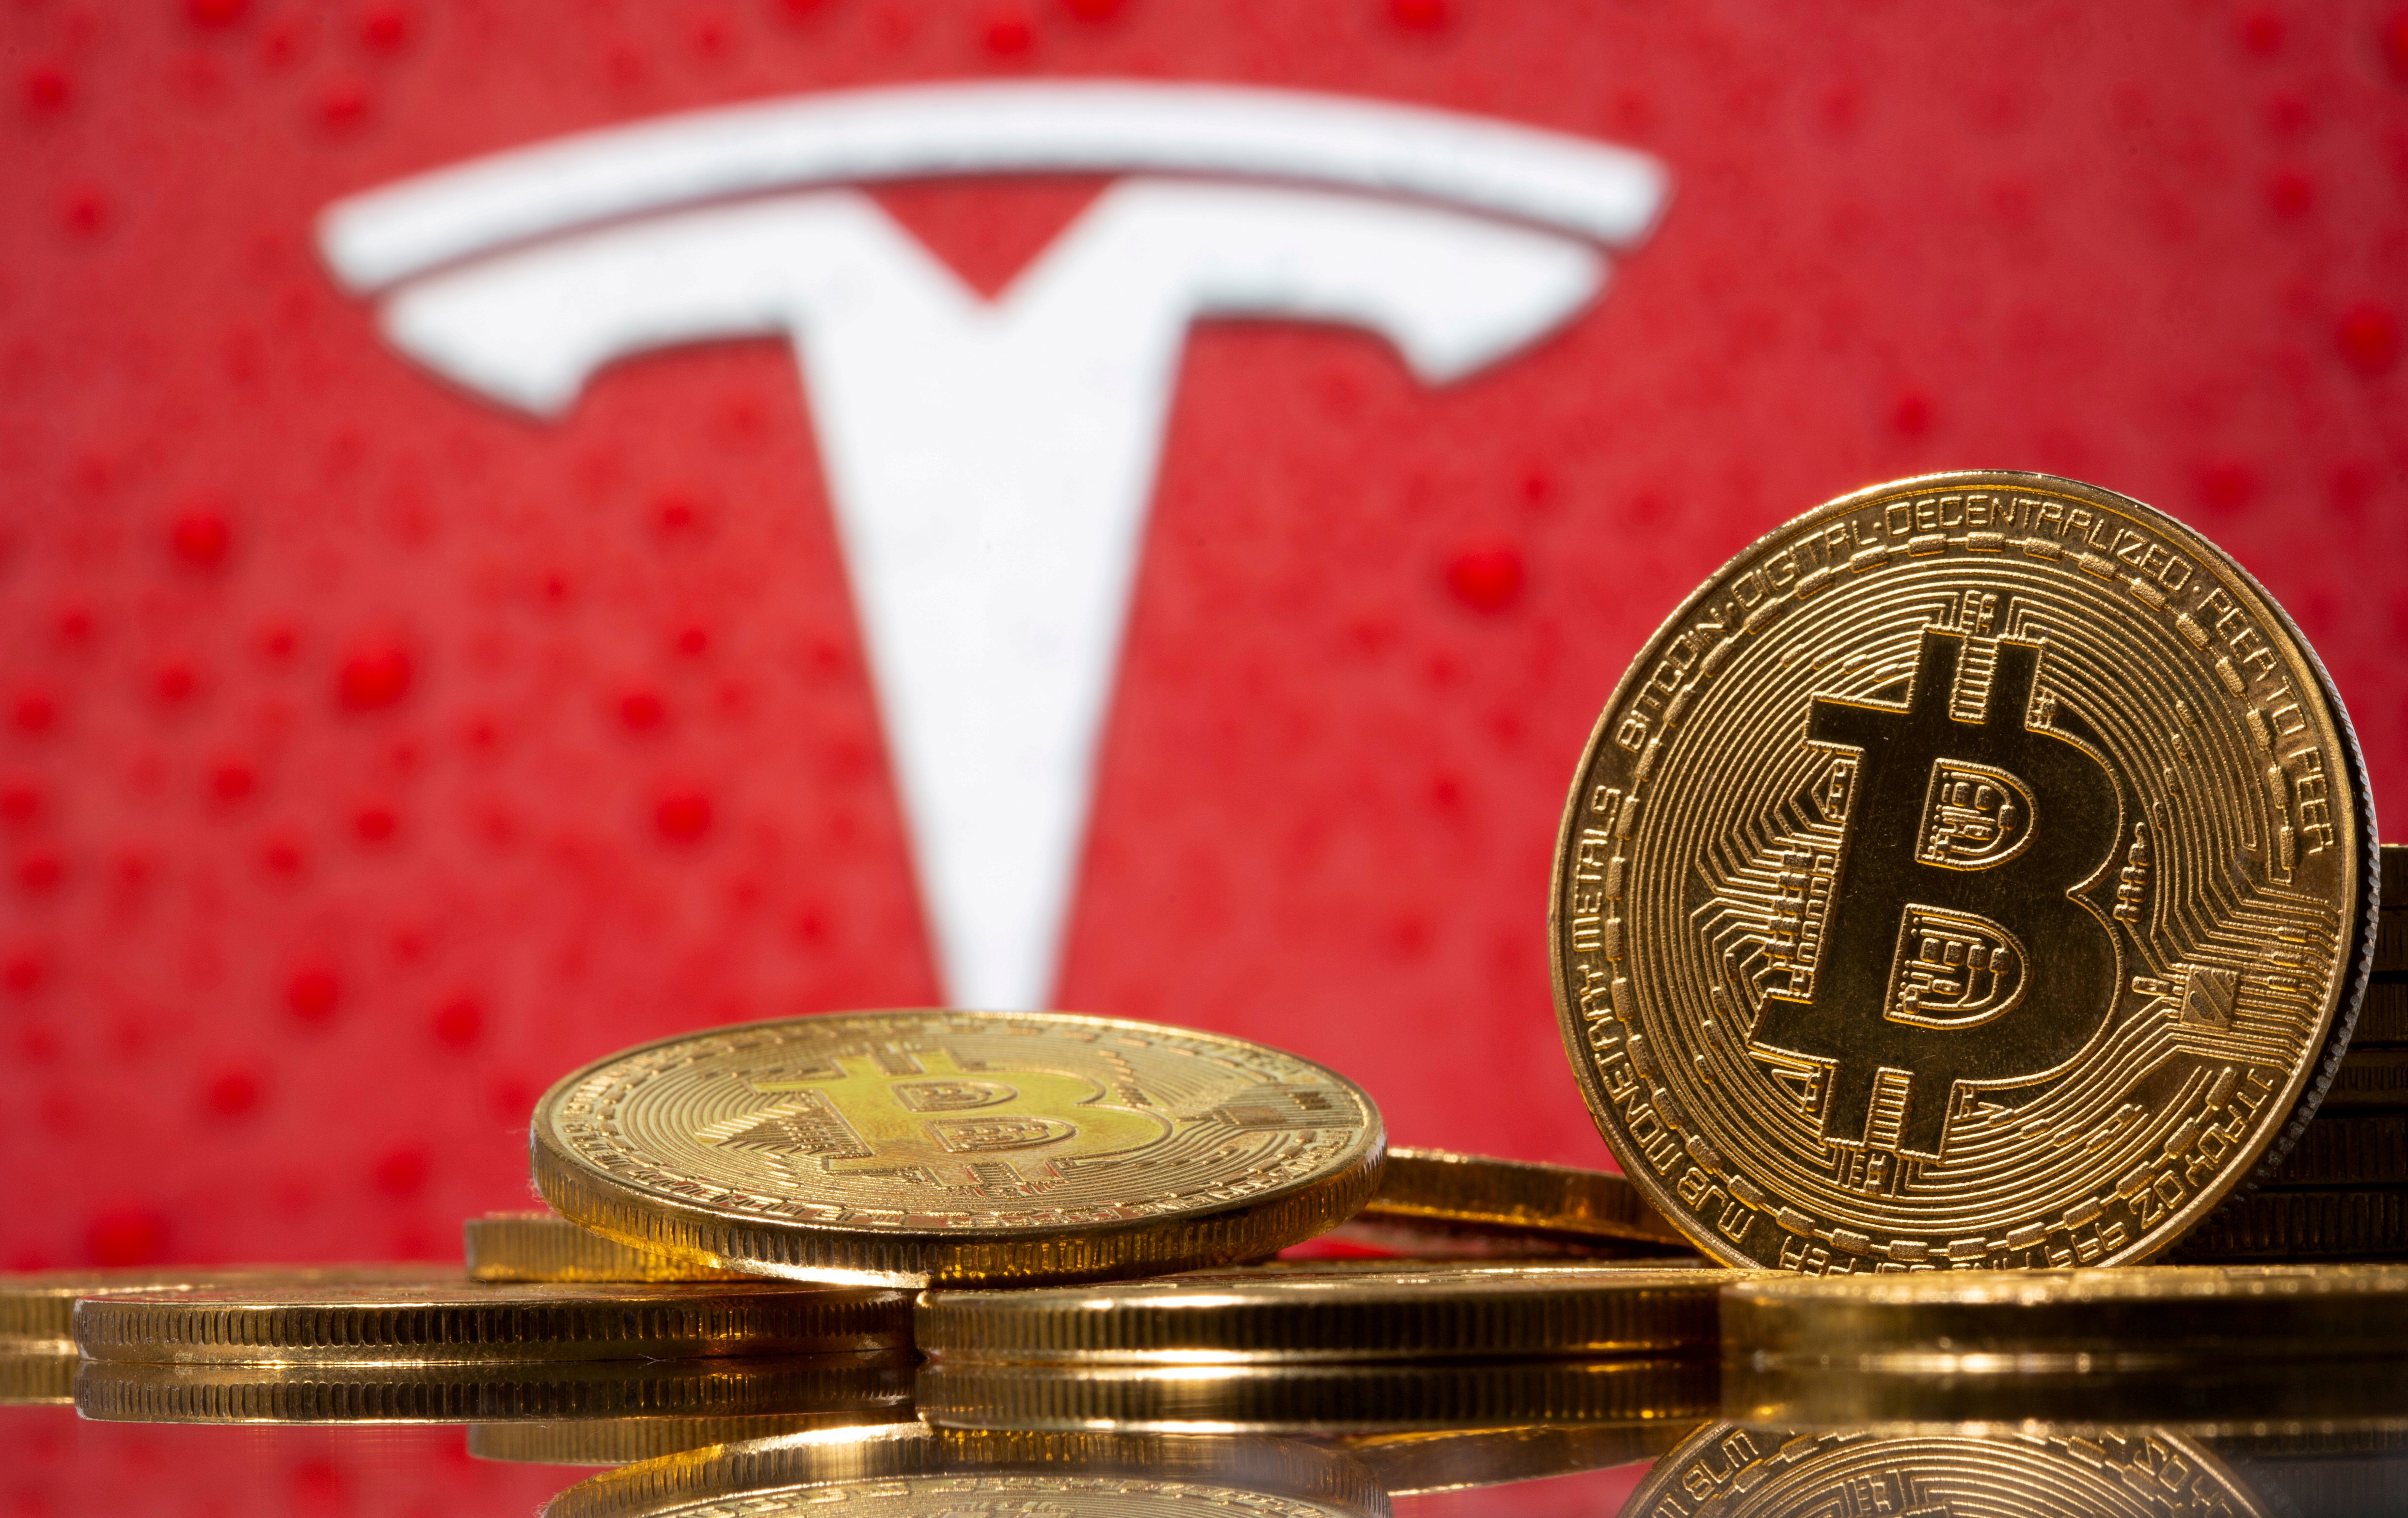 Representations of virtual currency bitcoin are seen in front of Tesla logo in this illustration taken, February 9, 2021. REUTERS/Dado Ruvic